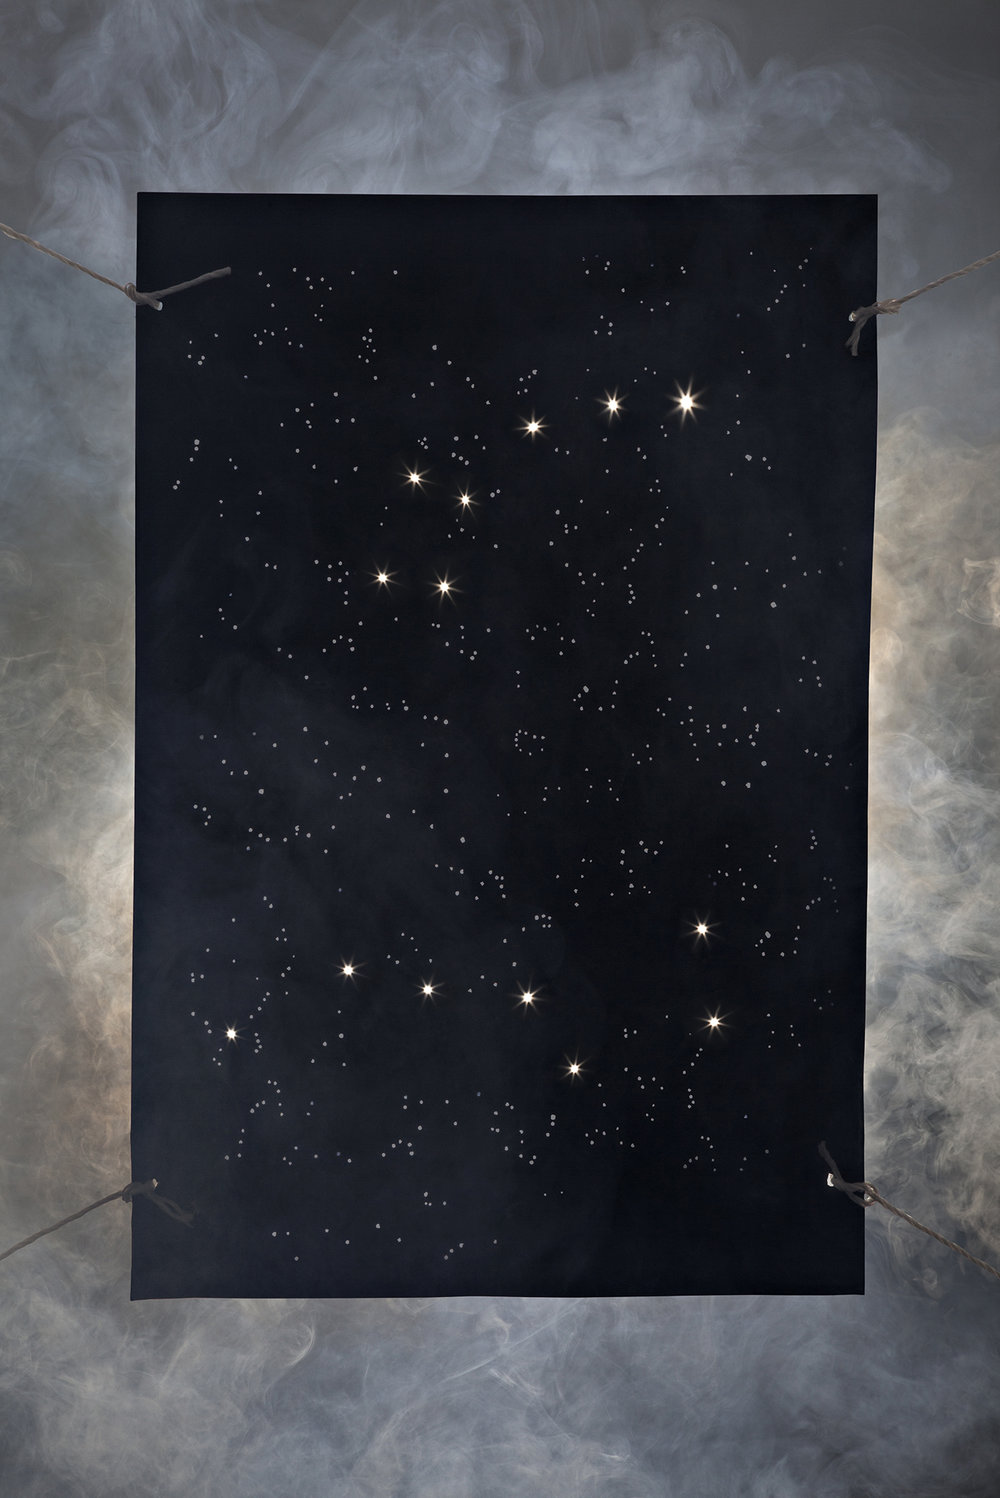 Bathtub Galaxy